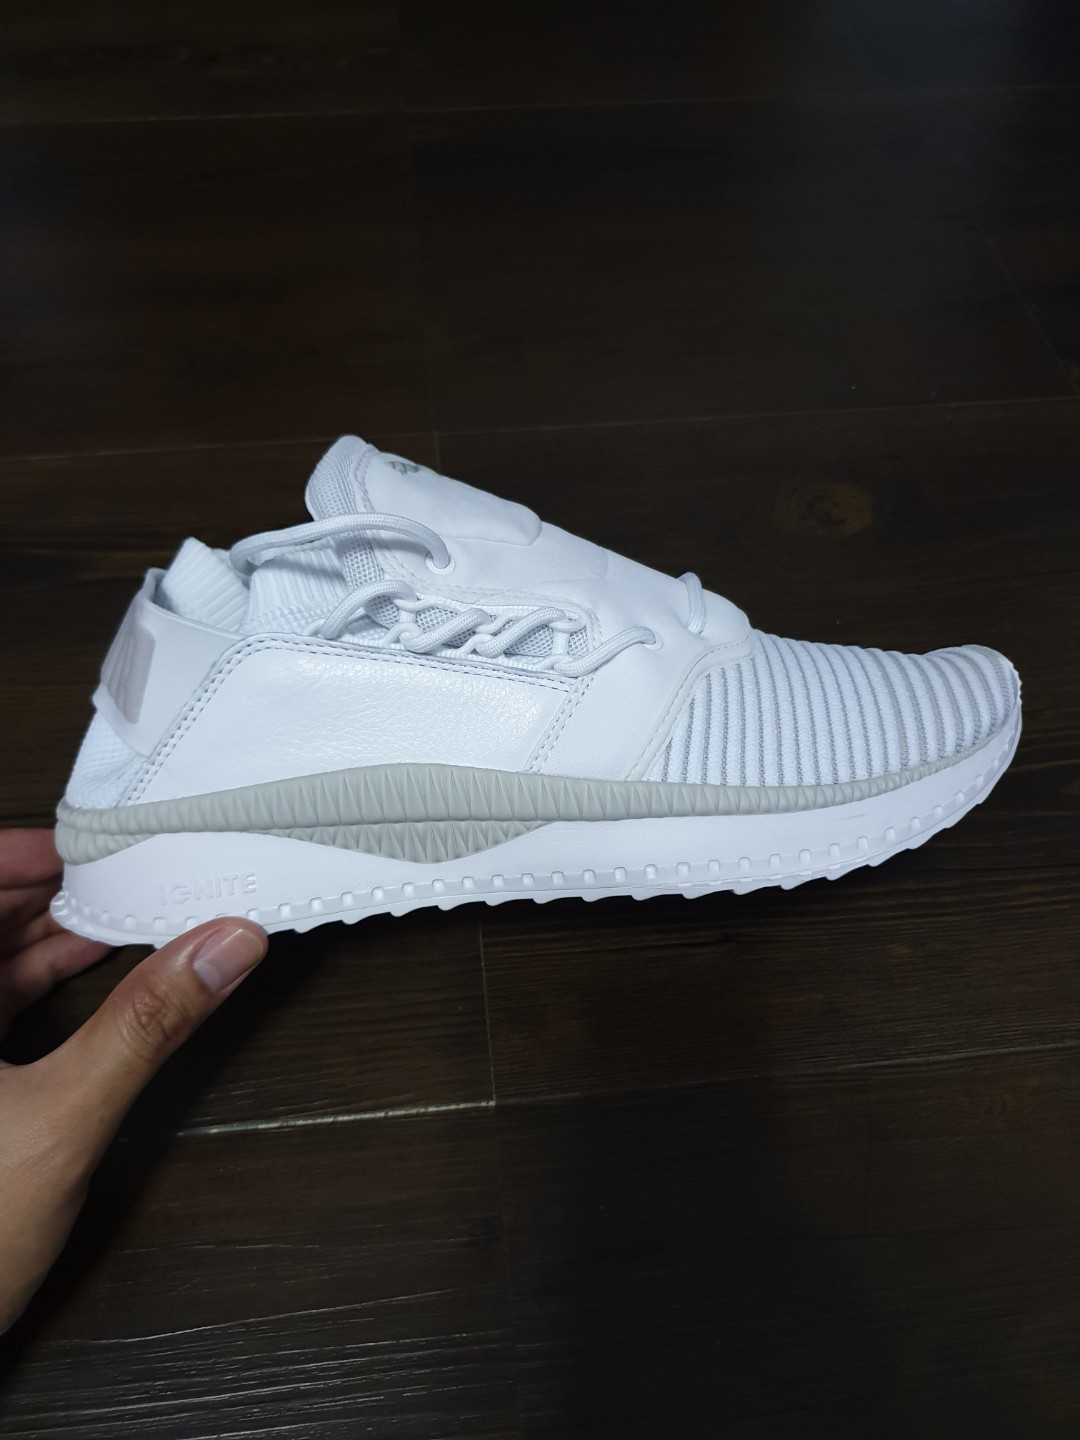 7d764183b174 Very new shoes! Puma tsugi shinsei evoknit.